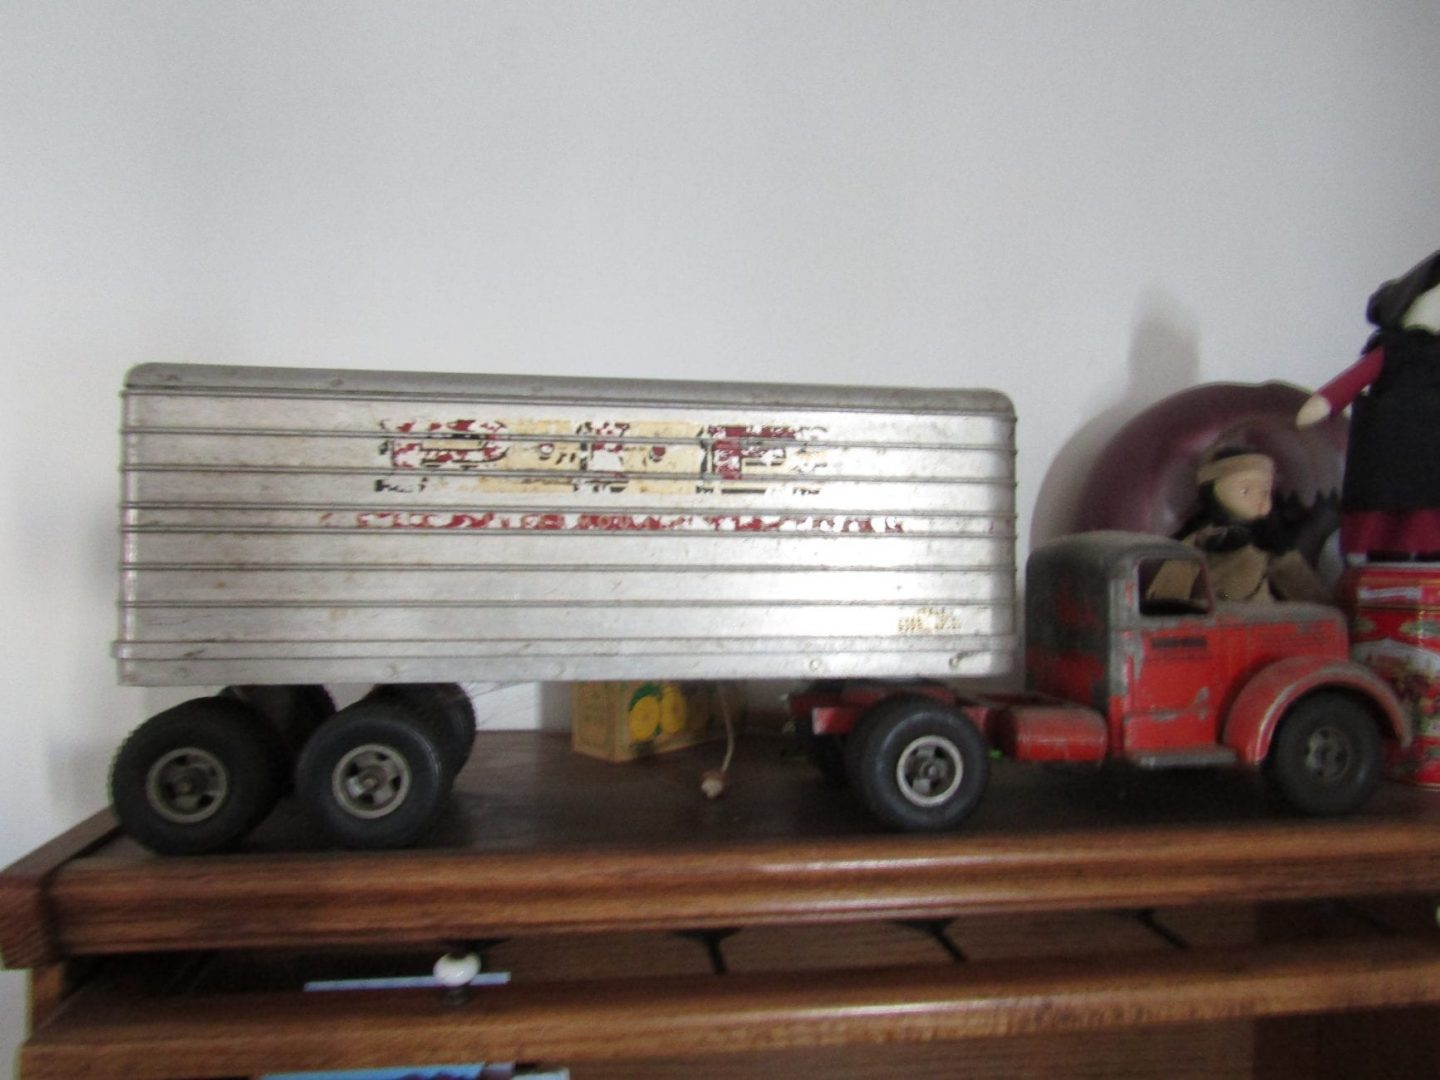 Estate Auction! Tractor, Tools, Furniture, Lapidary Equipment, LOTS of craft supplies & so much more!